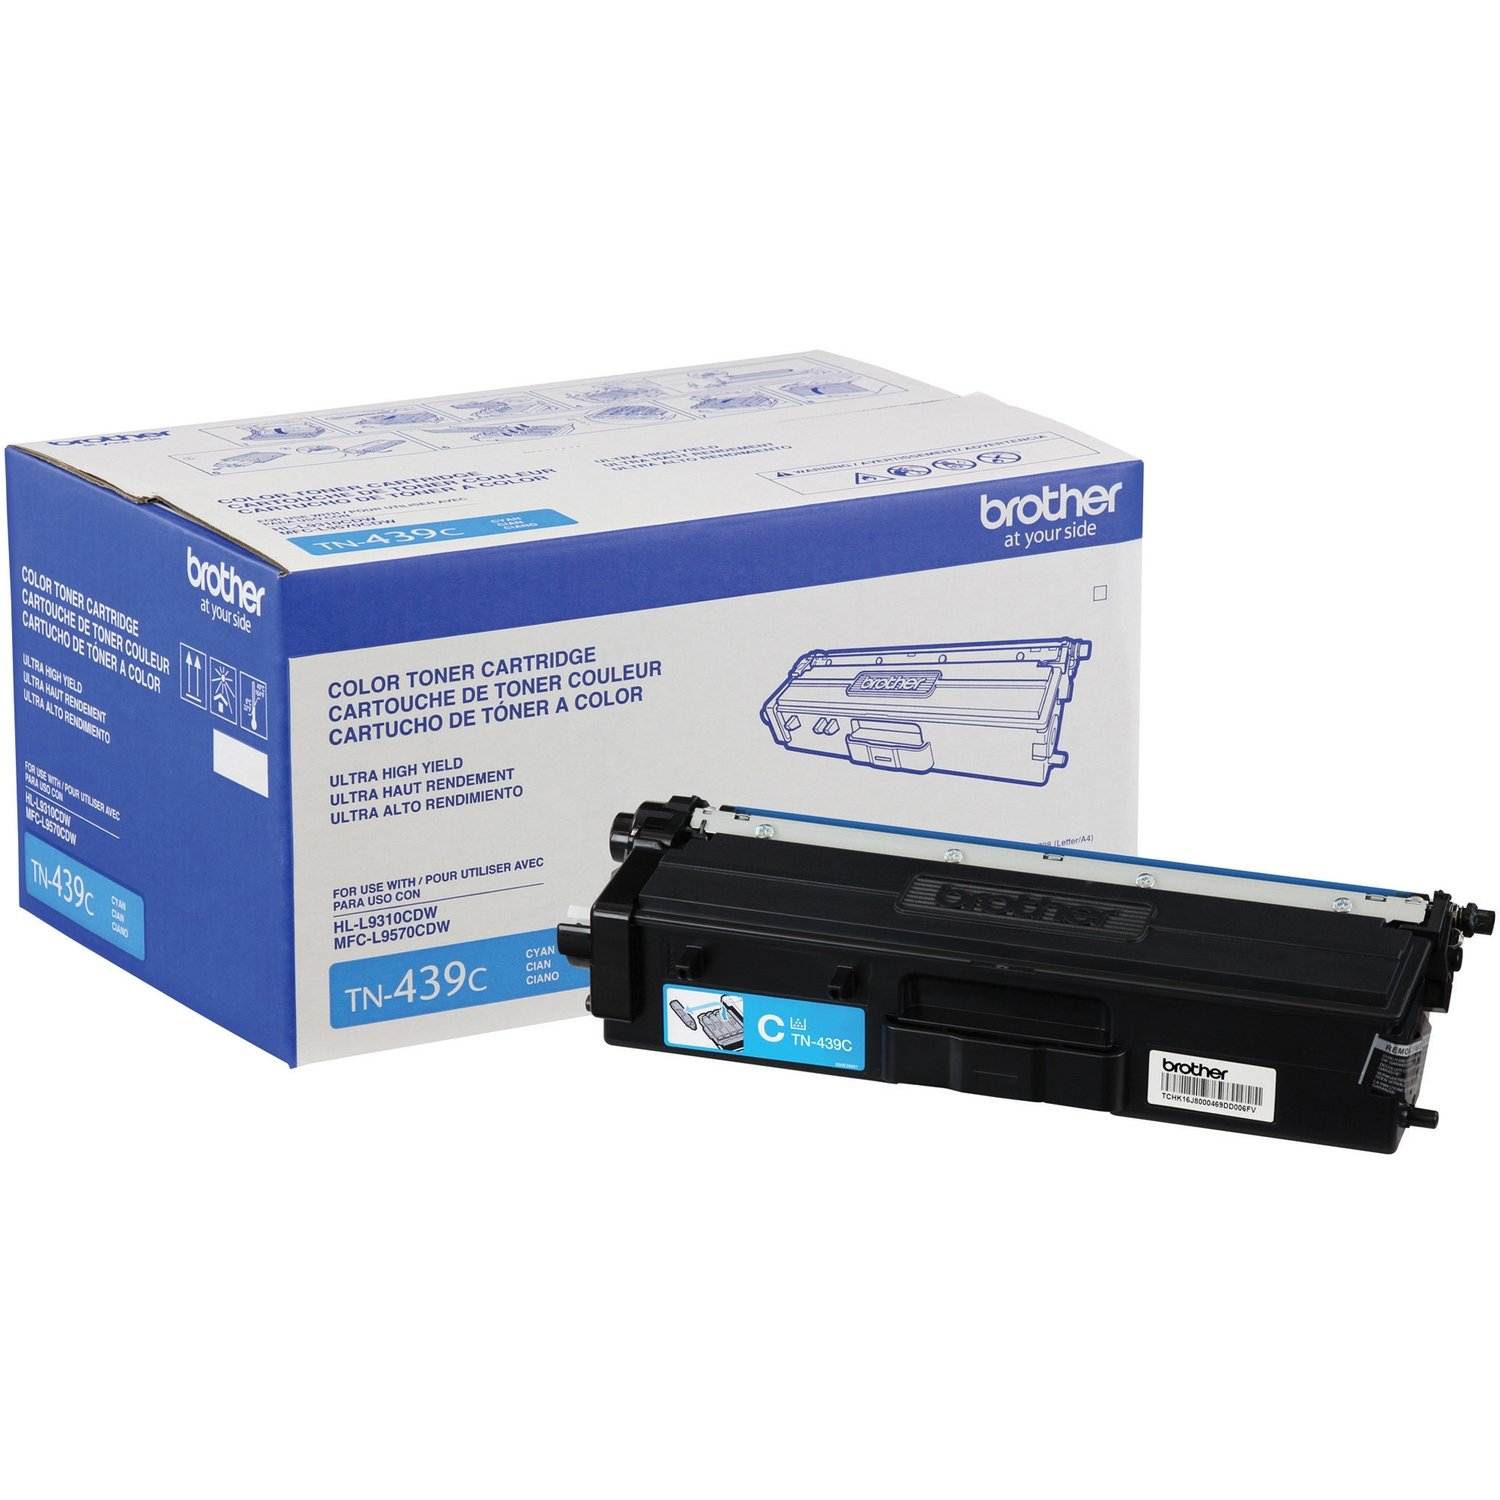 Cartouche de toner original cyan TN439C 9000 pages de Brother